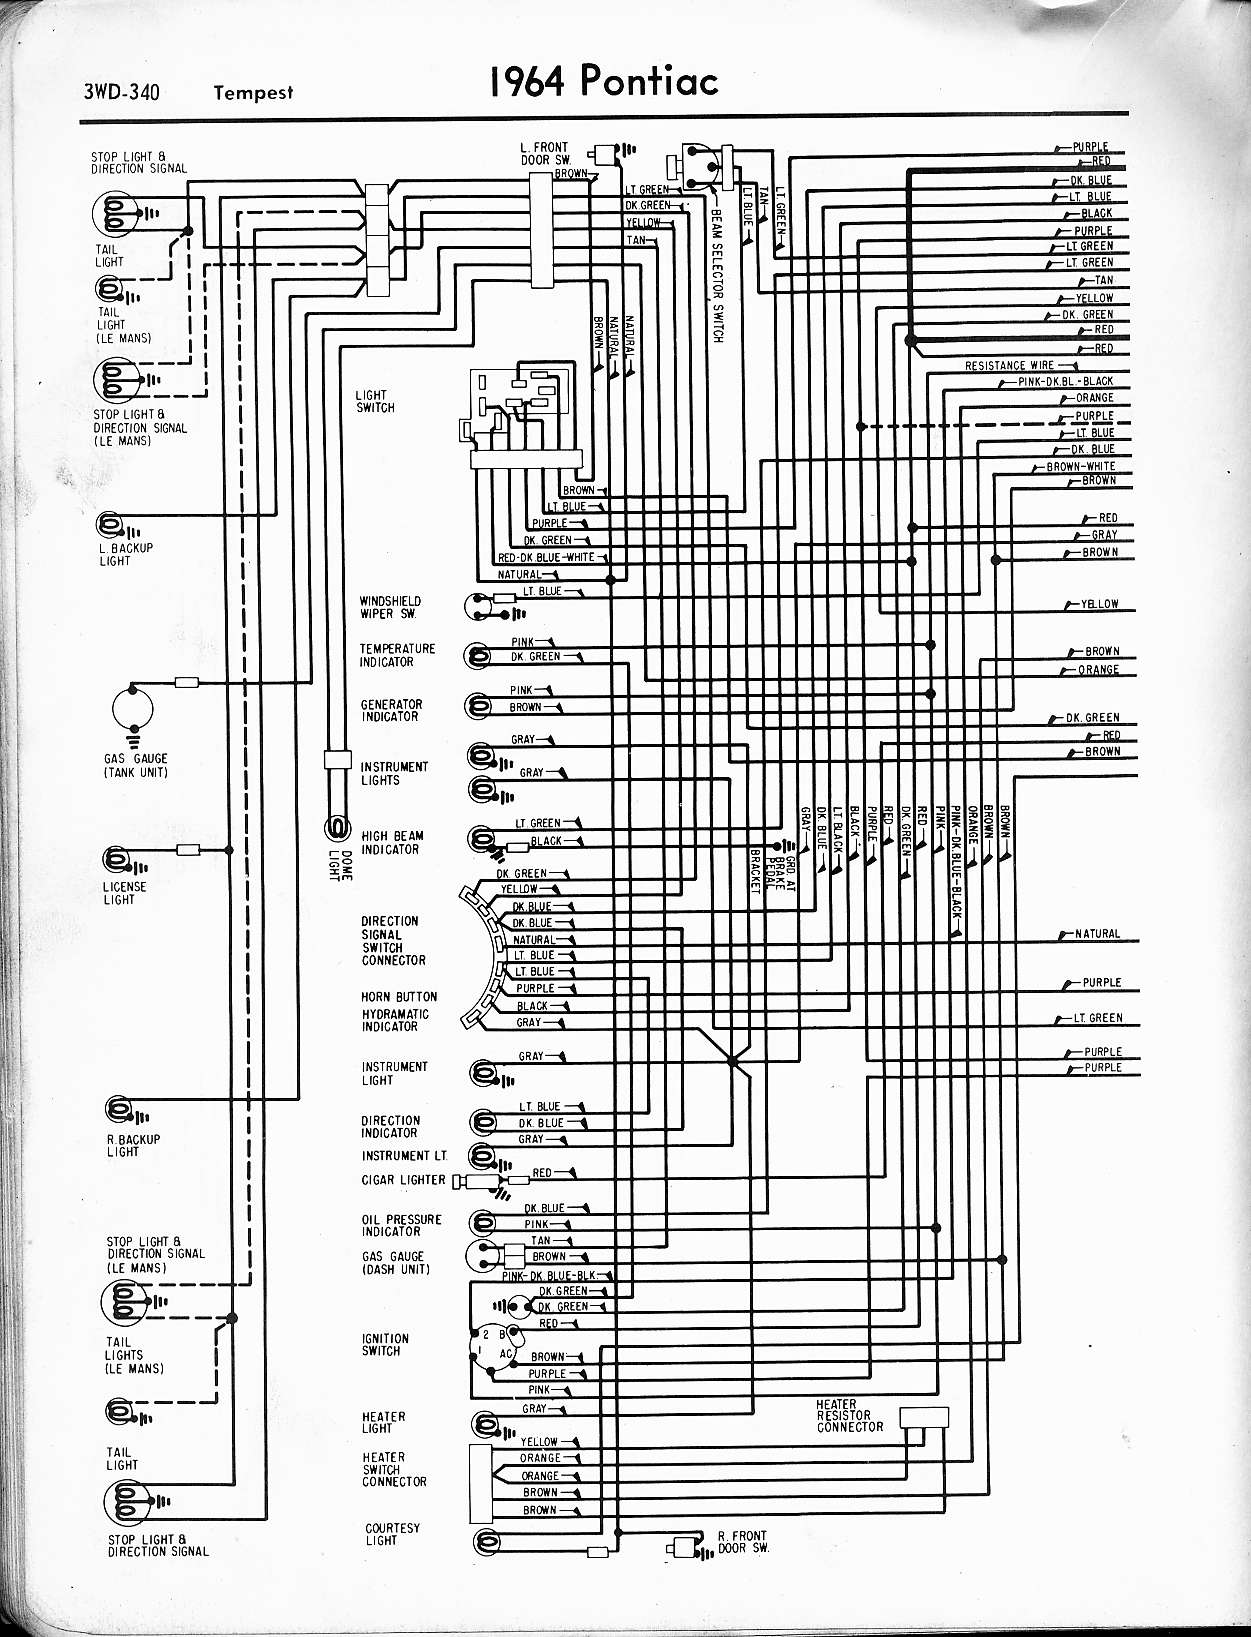 66 Pontiac Gto Wiring Diagram Schematics C10 Diagrams Wallace Racing Air Conditioning 1964 Tempest Left Page